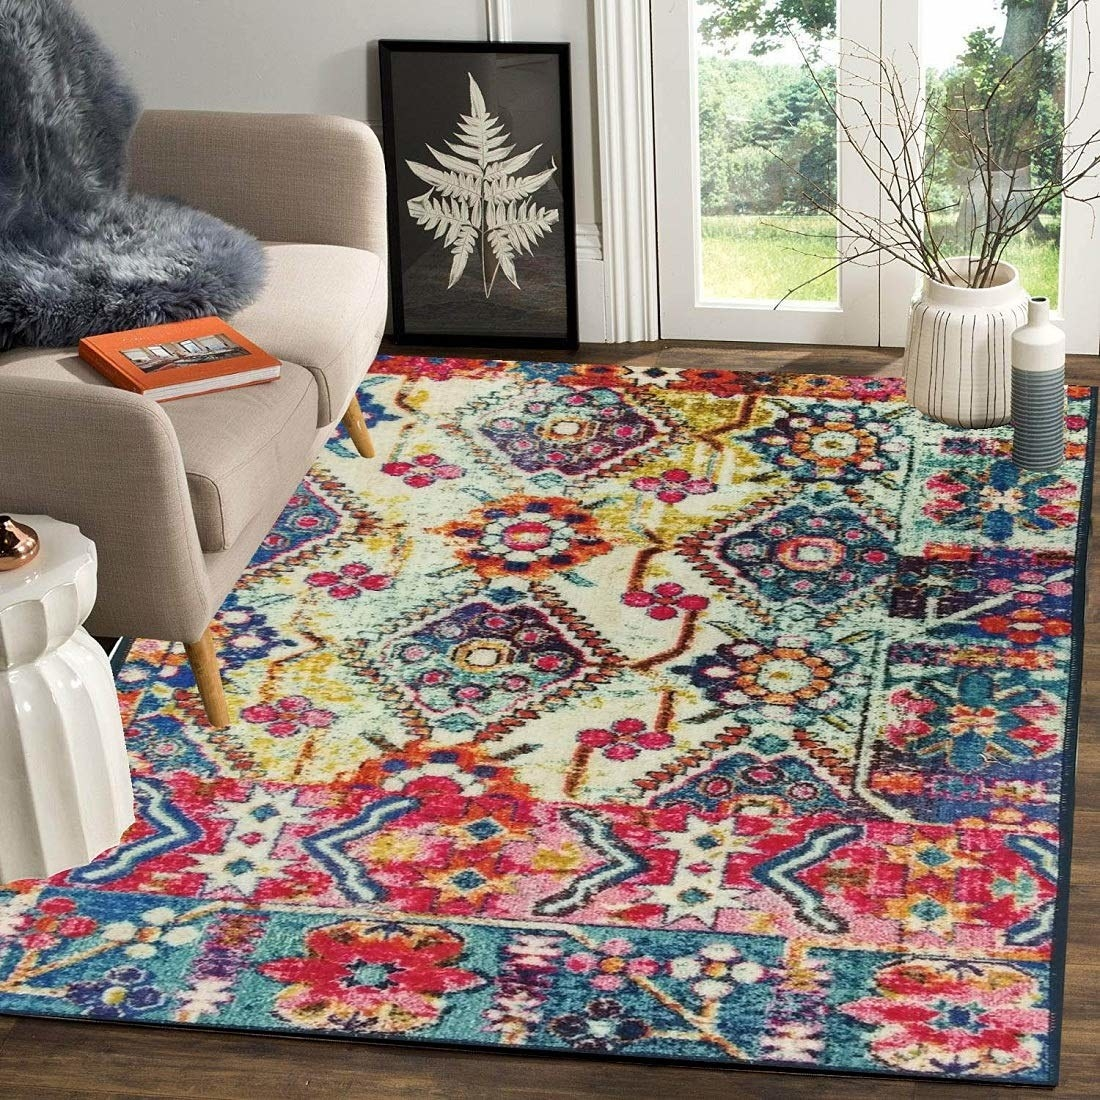 The rug displayed in a living room.